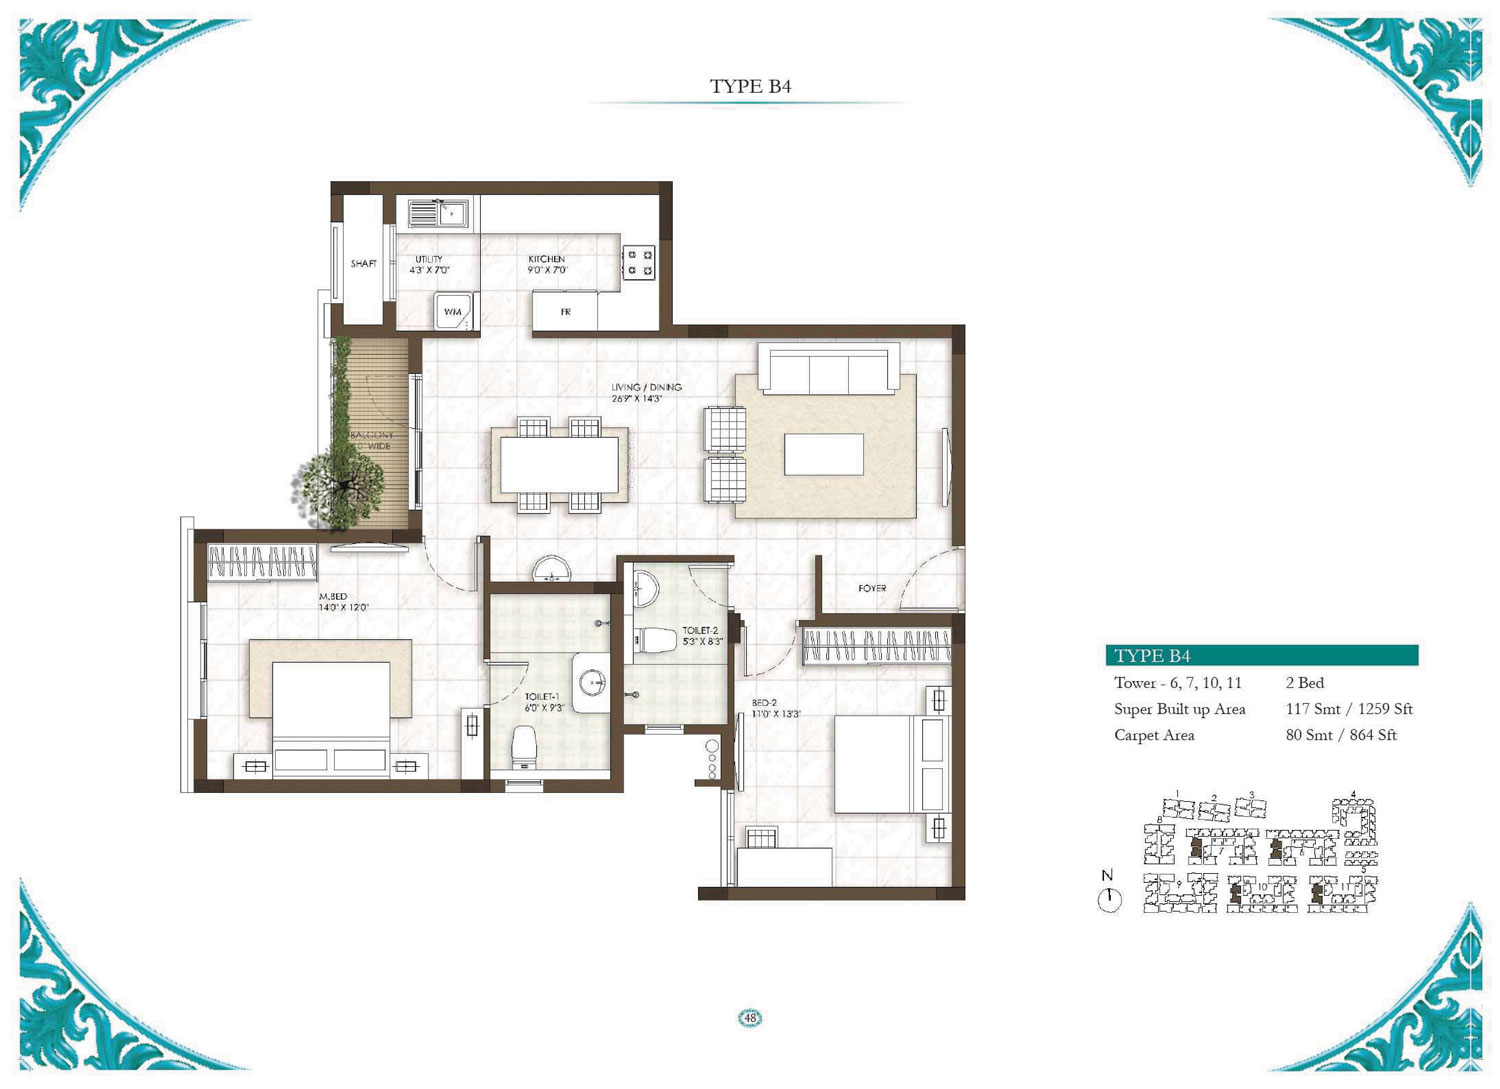 Type B4 - 1 Bed - 1259 Sq Ft